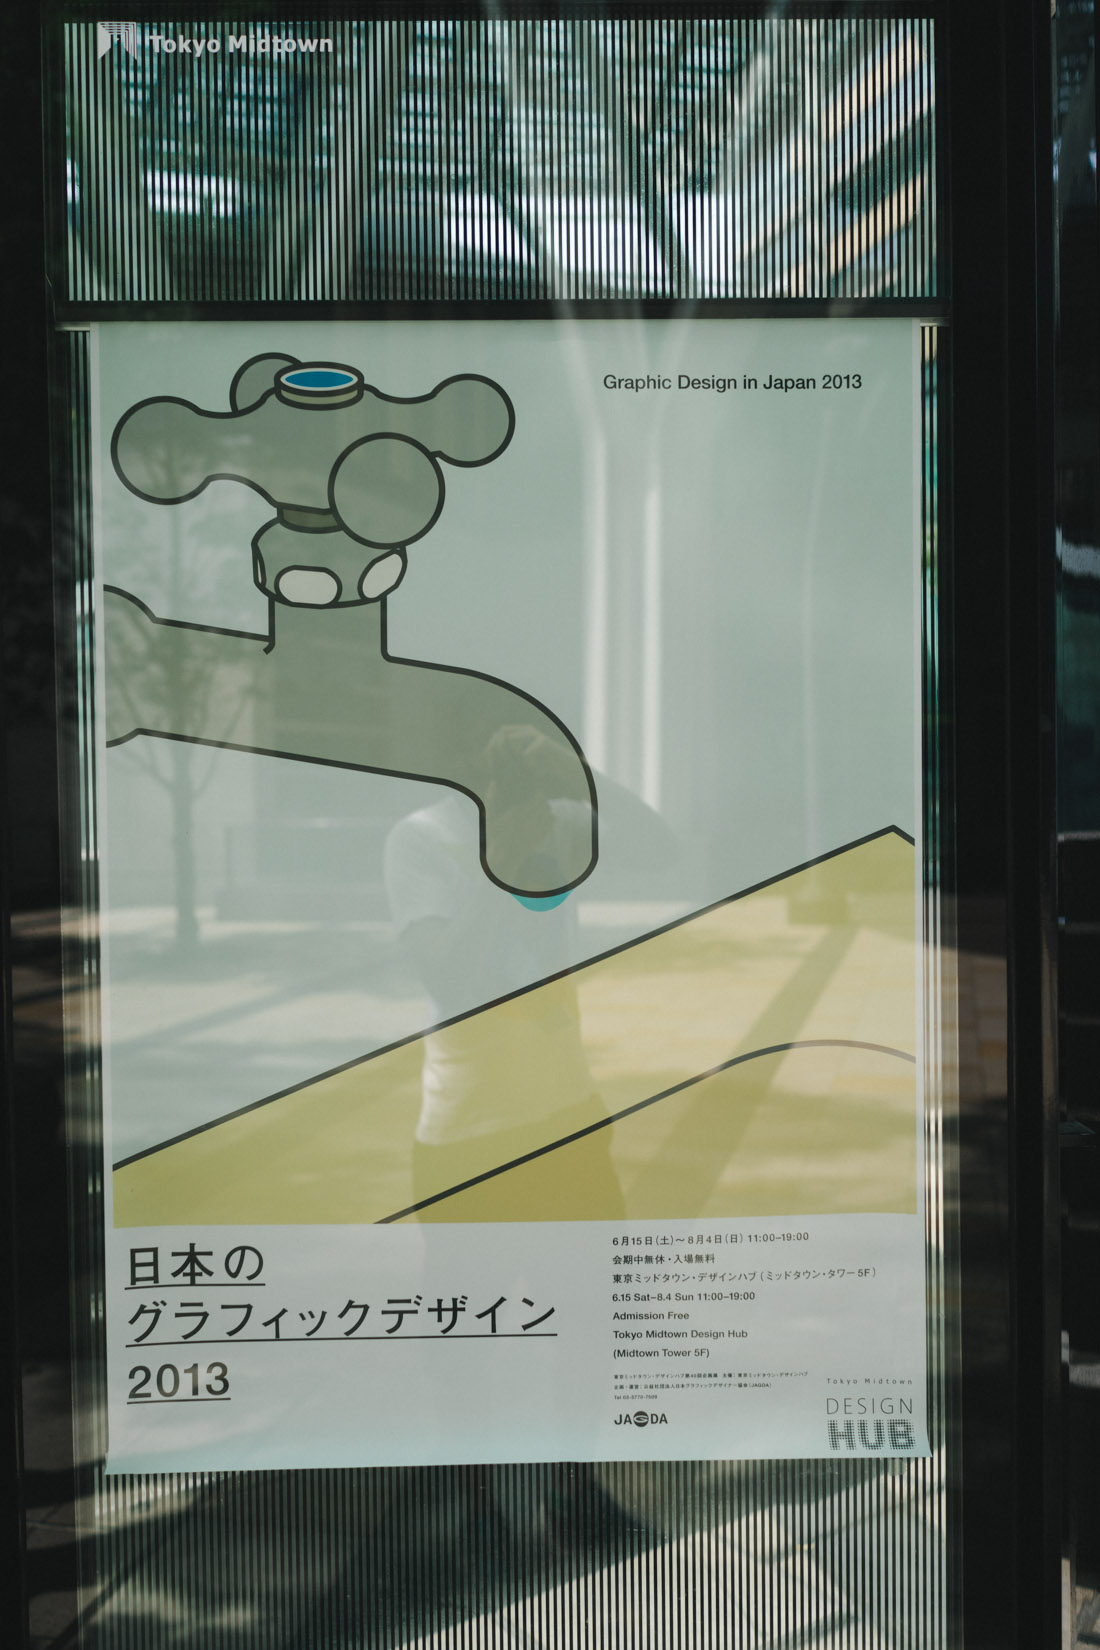 Awesome poster! Design in Japan is quite confined and minimal; more often than not with great communication results.